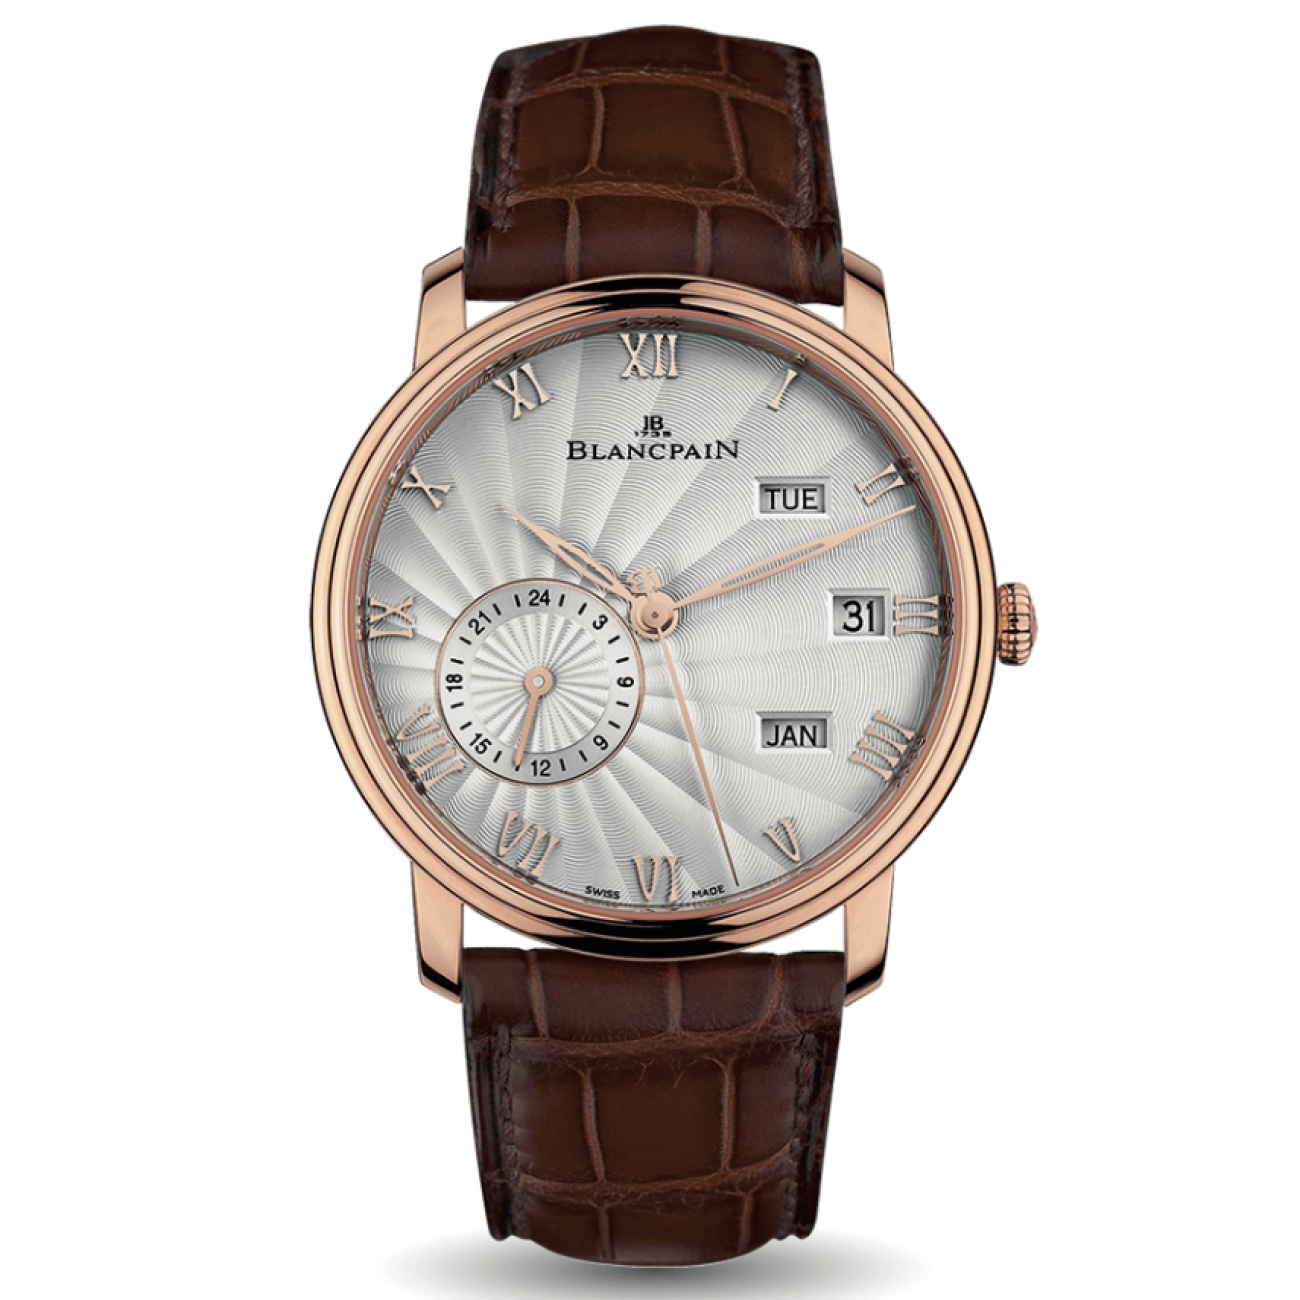 Blancpain Watches - Blancpain VILLERET ANNUAL CALENDER GMT | Manfredi Jewels